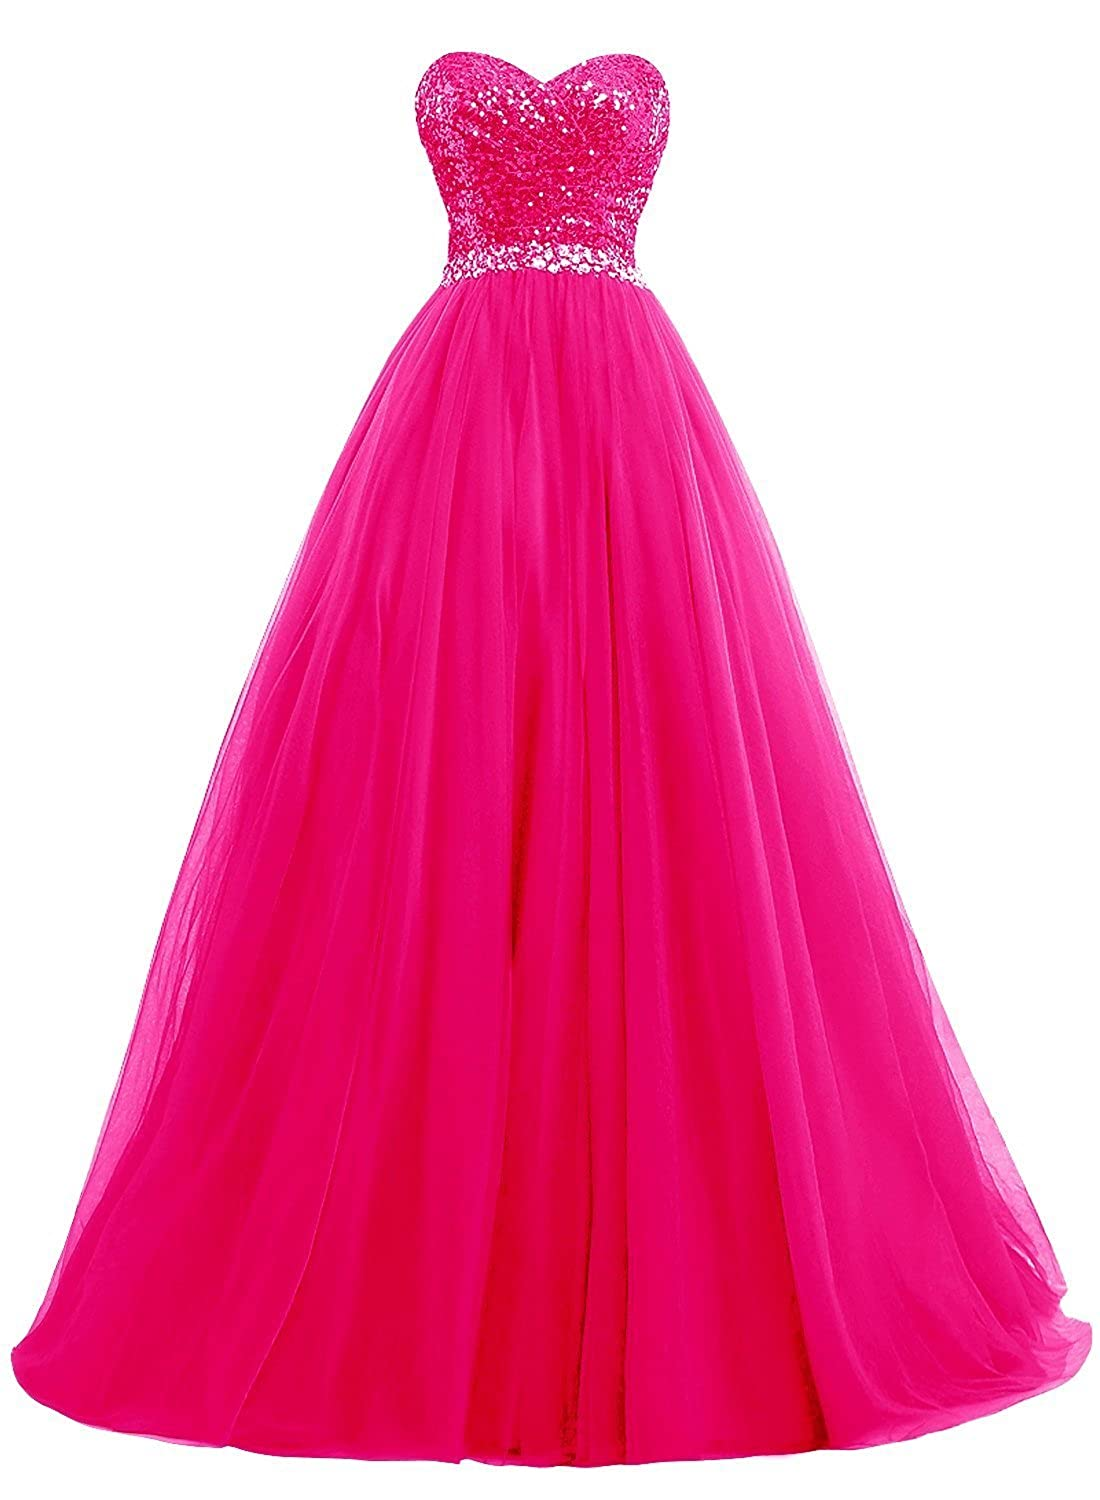 Hot Pink Fanciest Women's Sweet 16 Tulle Sequin Ball Gown Prom Dresses for Quinceanera